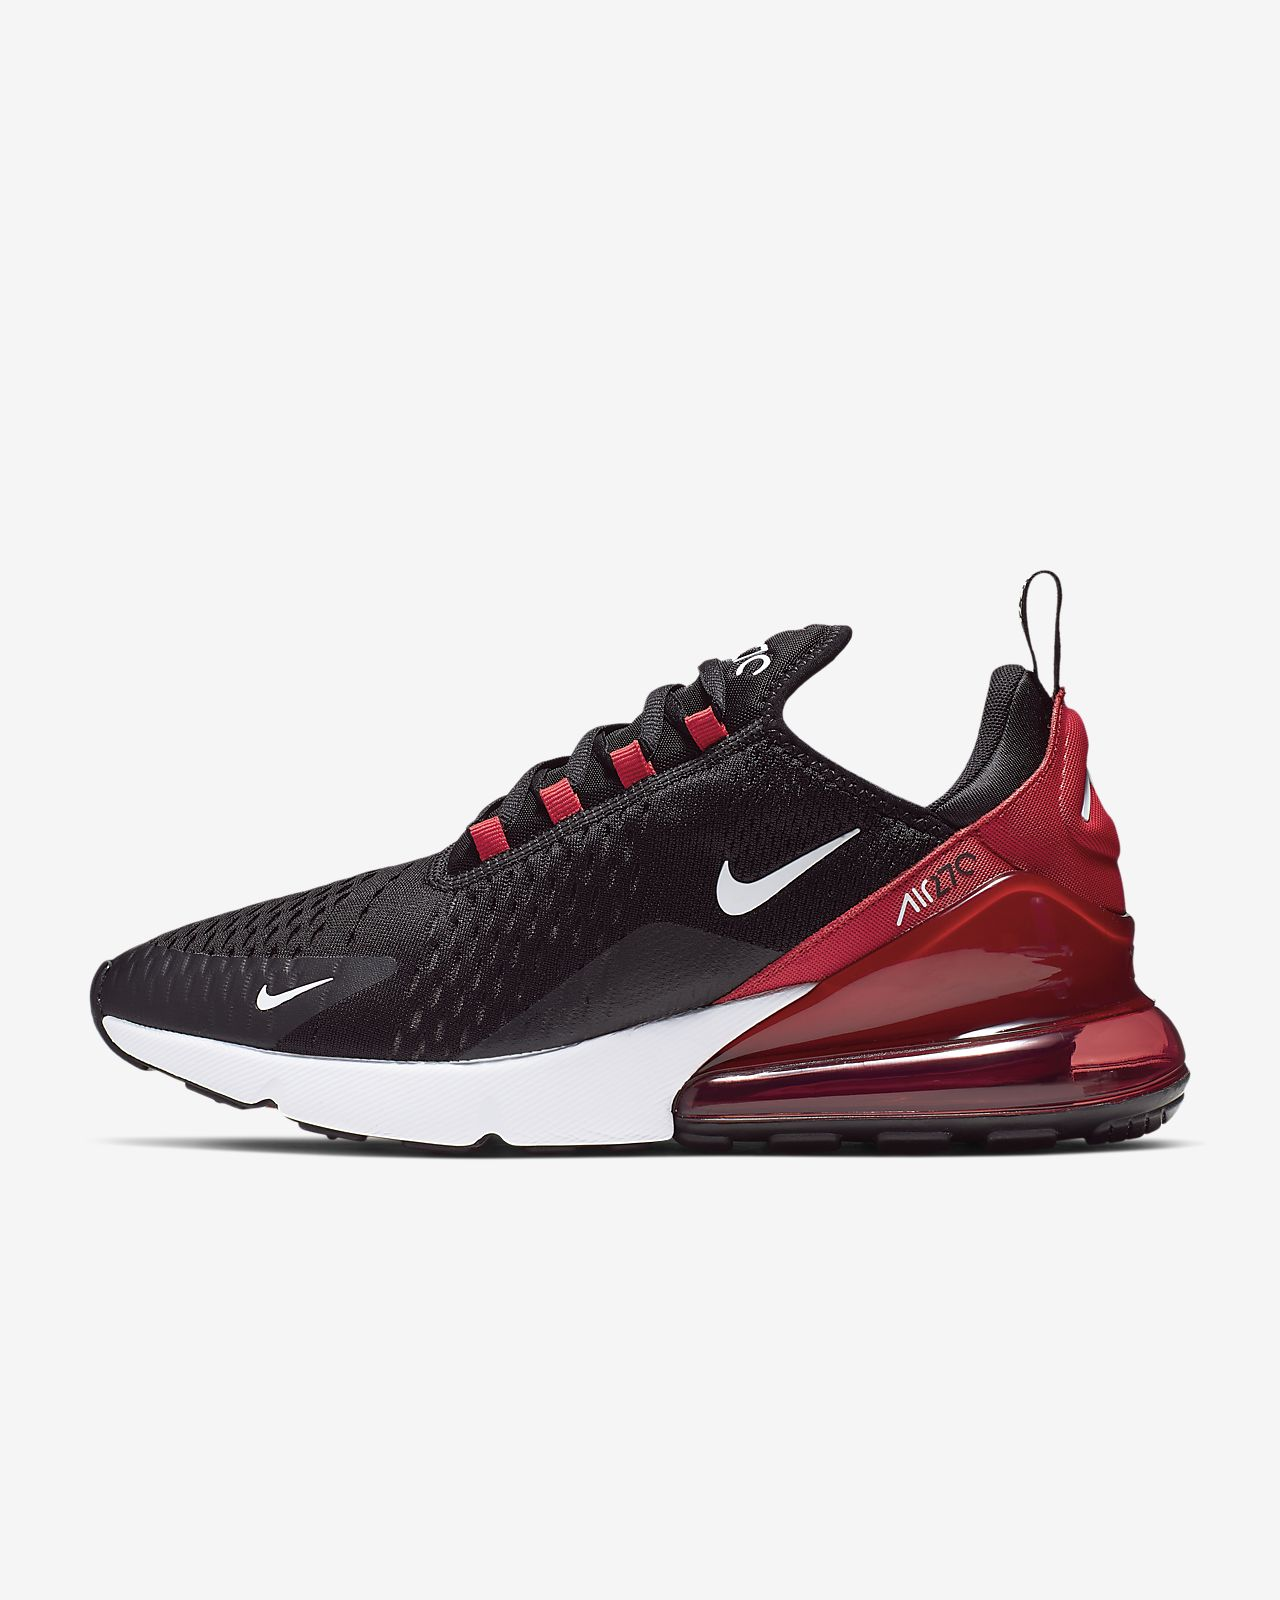 huge selection of 91efc 58550 ... Sko Nike Air Max 270 för män